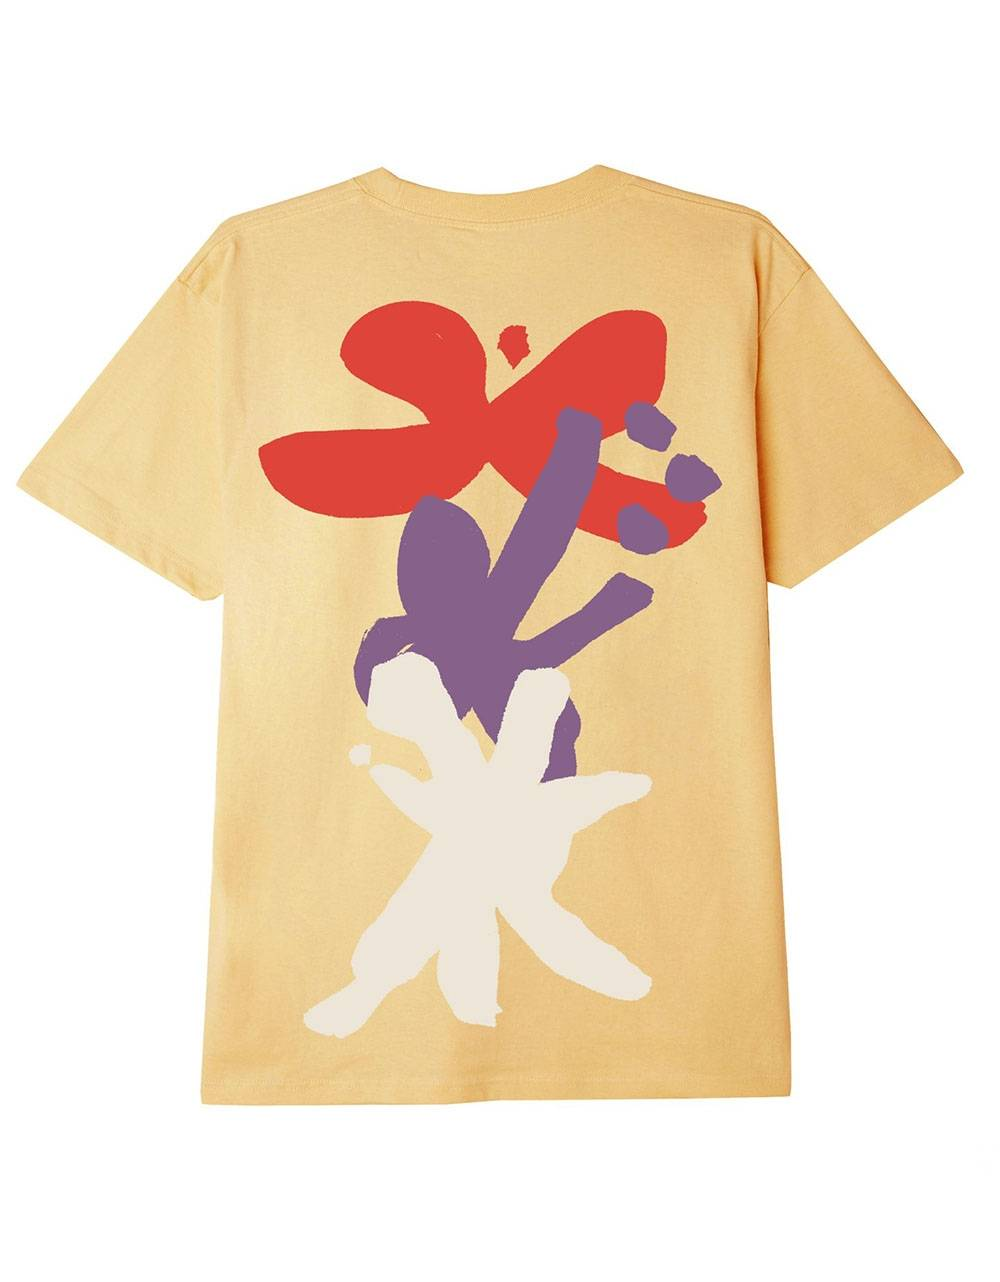 Obey Flower dance sustainable t-shirt - croissant obey T-shirt 45,08€